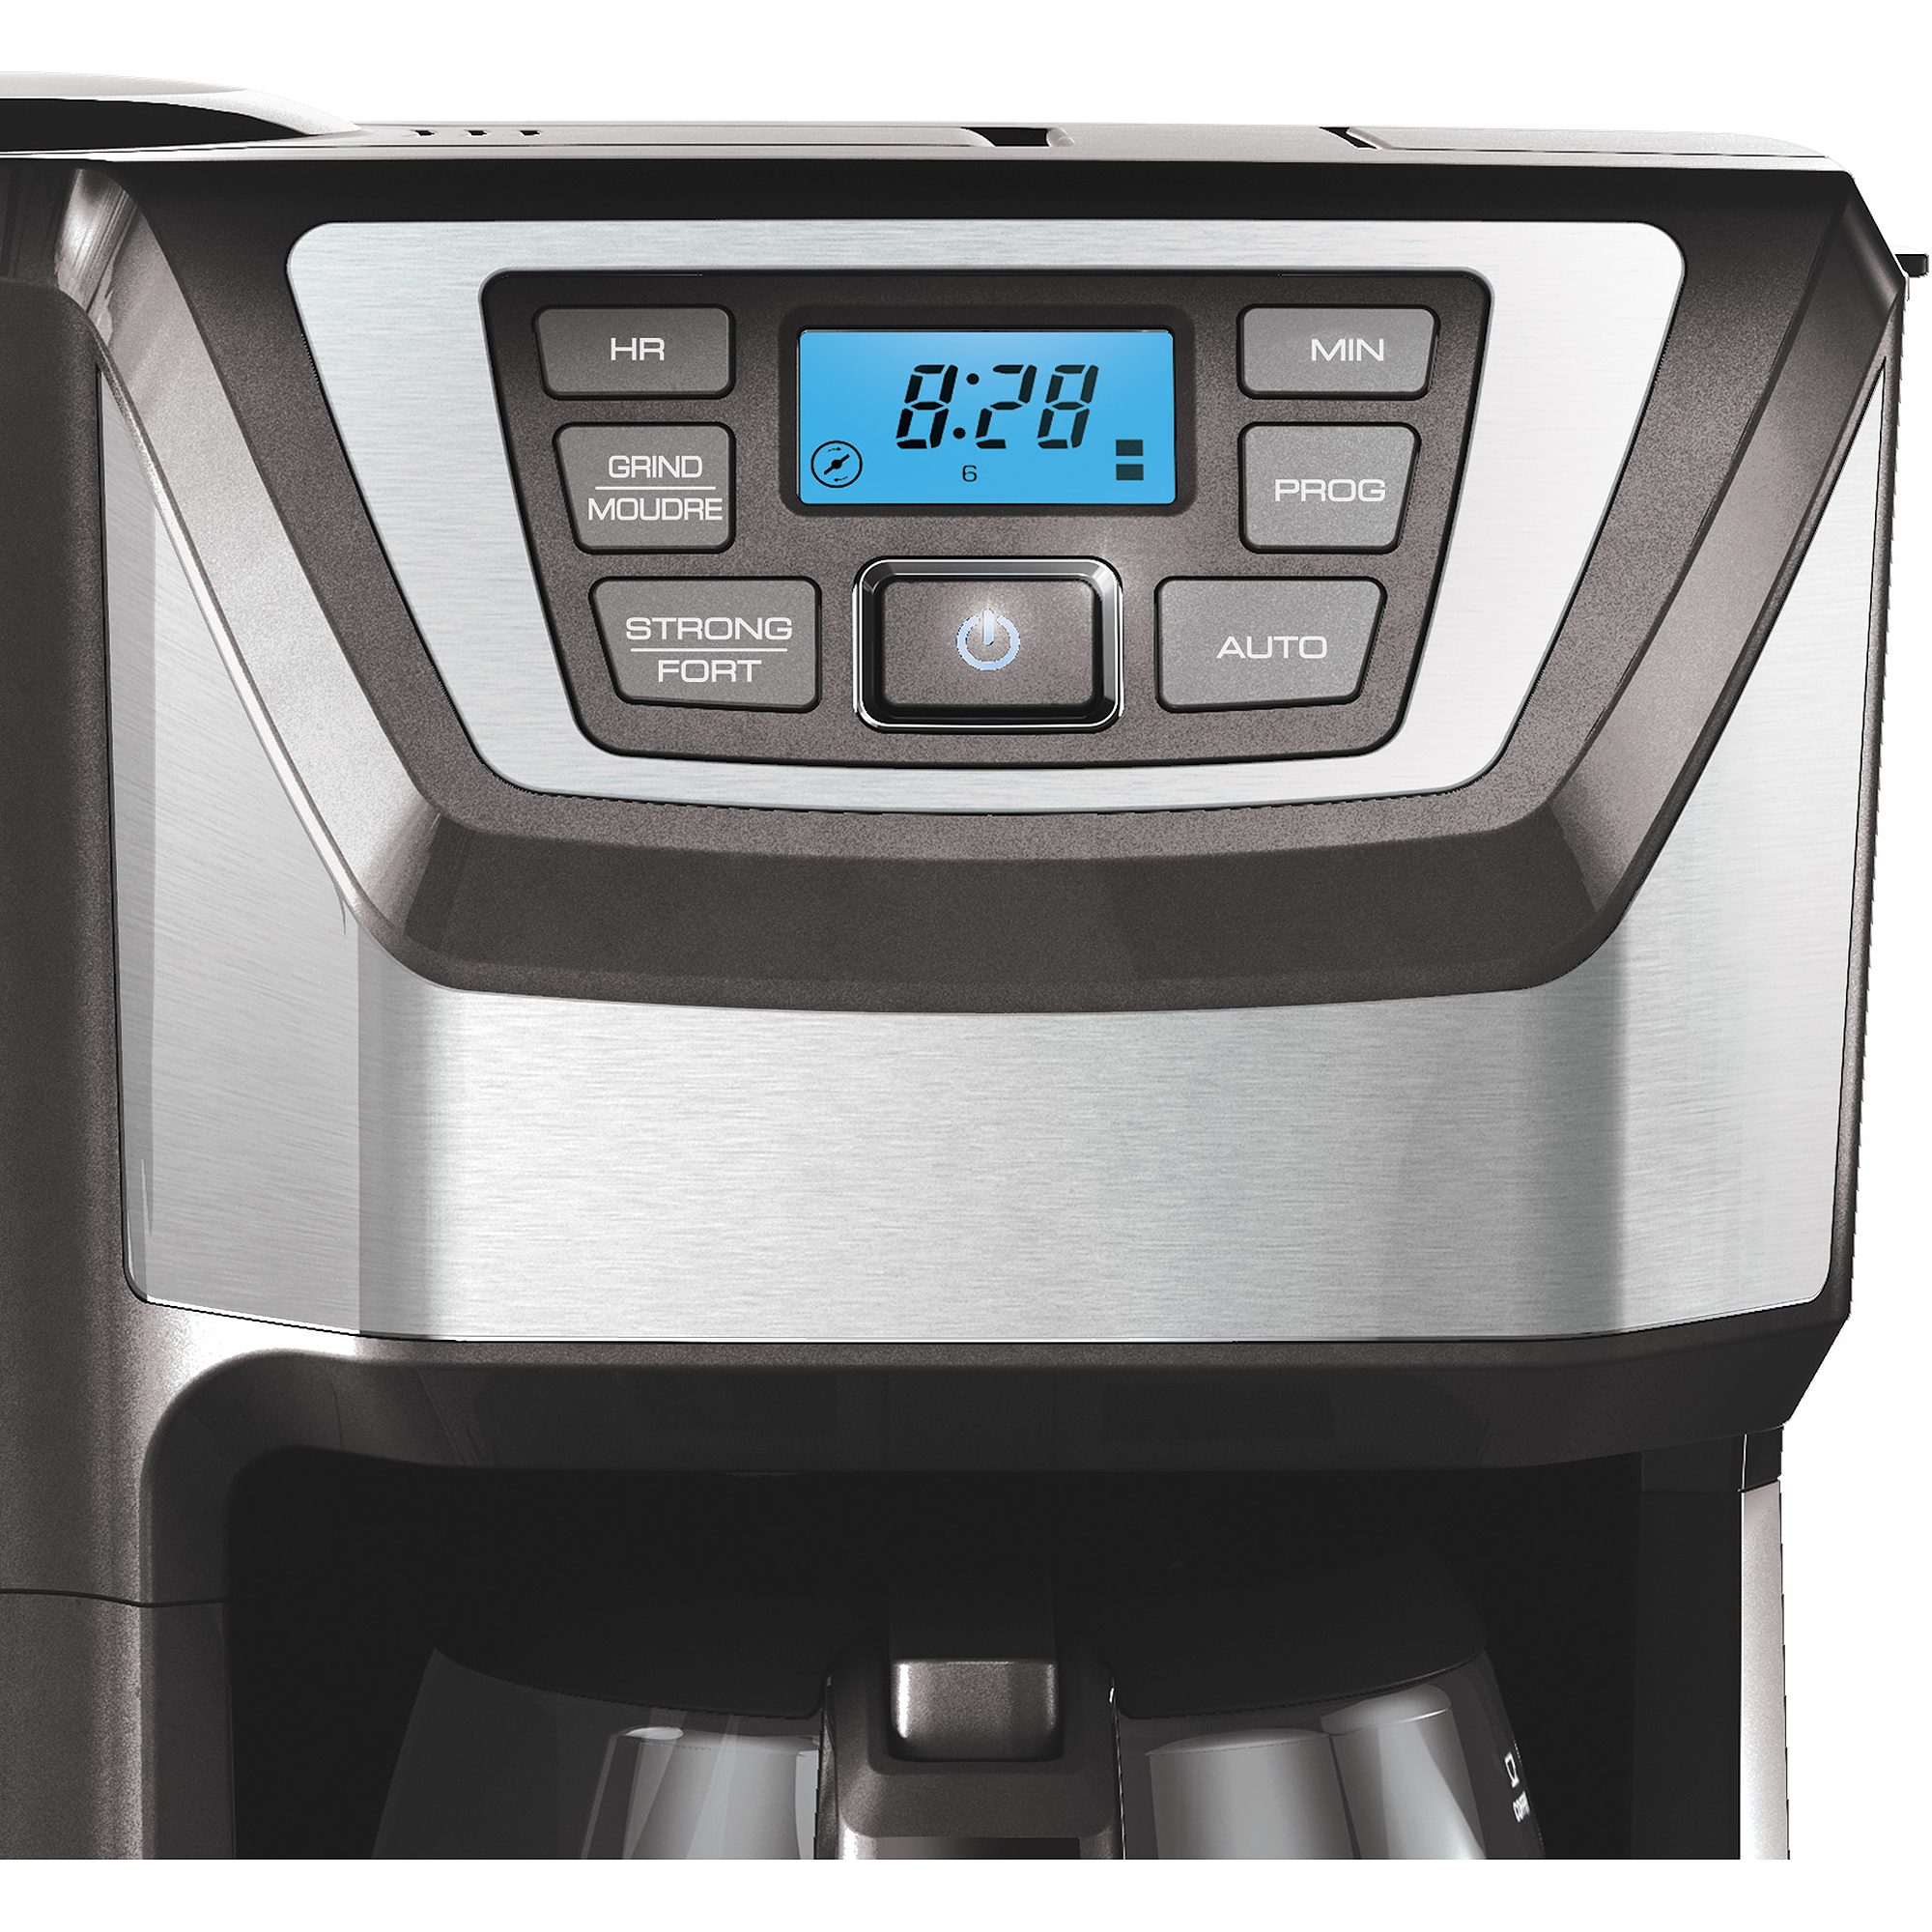 BLACK+DECKER Mill and Brew 12-Cup Programmable Coffee Maker with Grinder, CM500 eBay